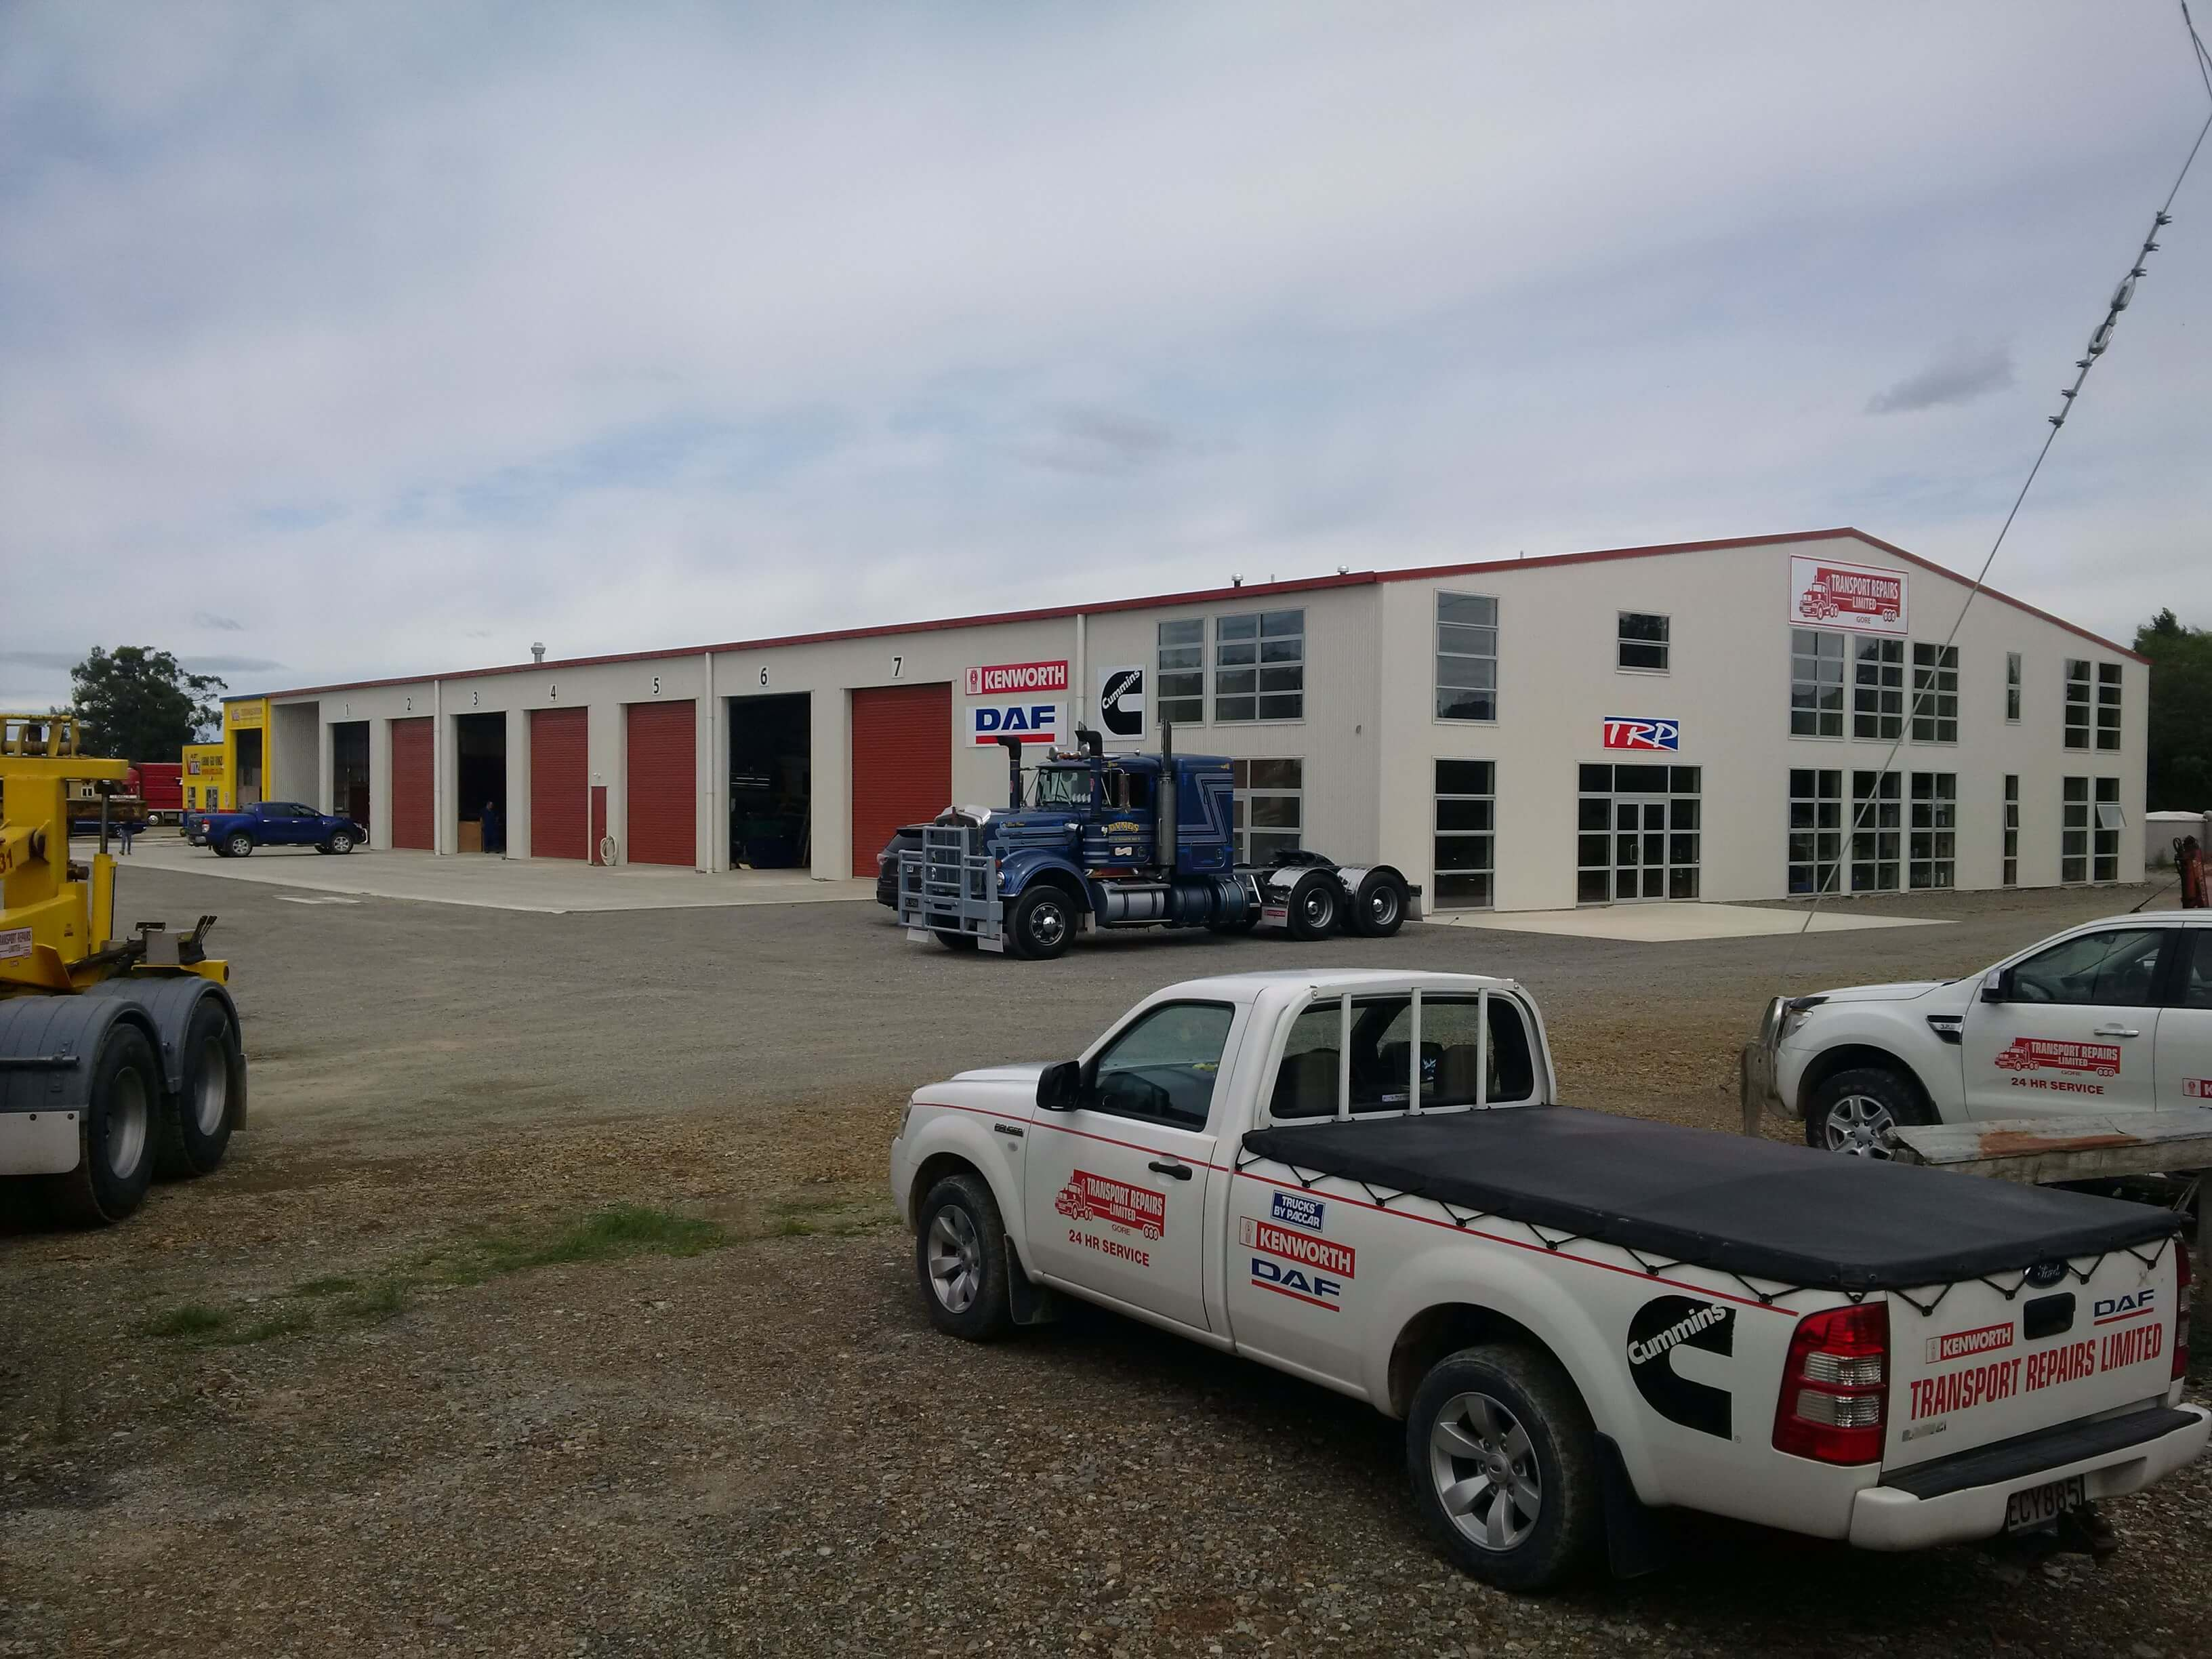 Steel structure by Alpine Buildings created for Transport Repairs LTD